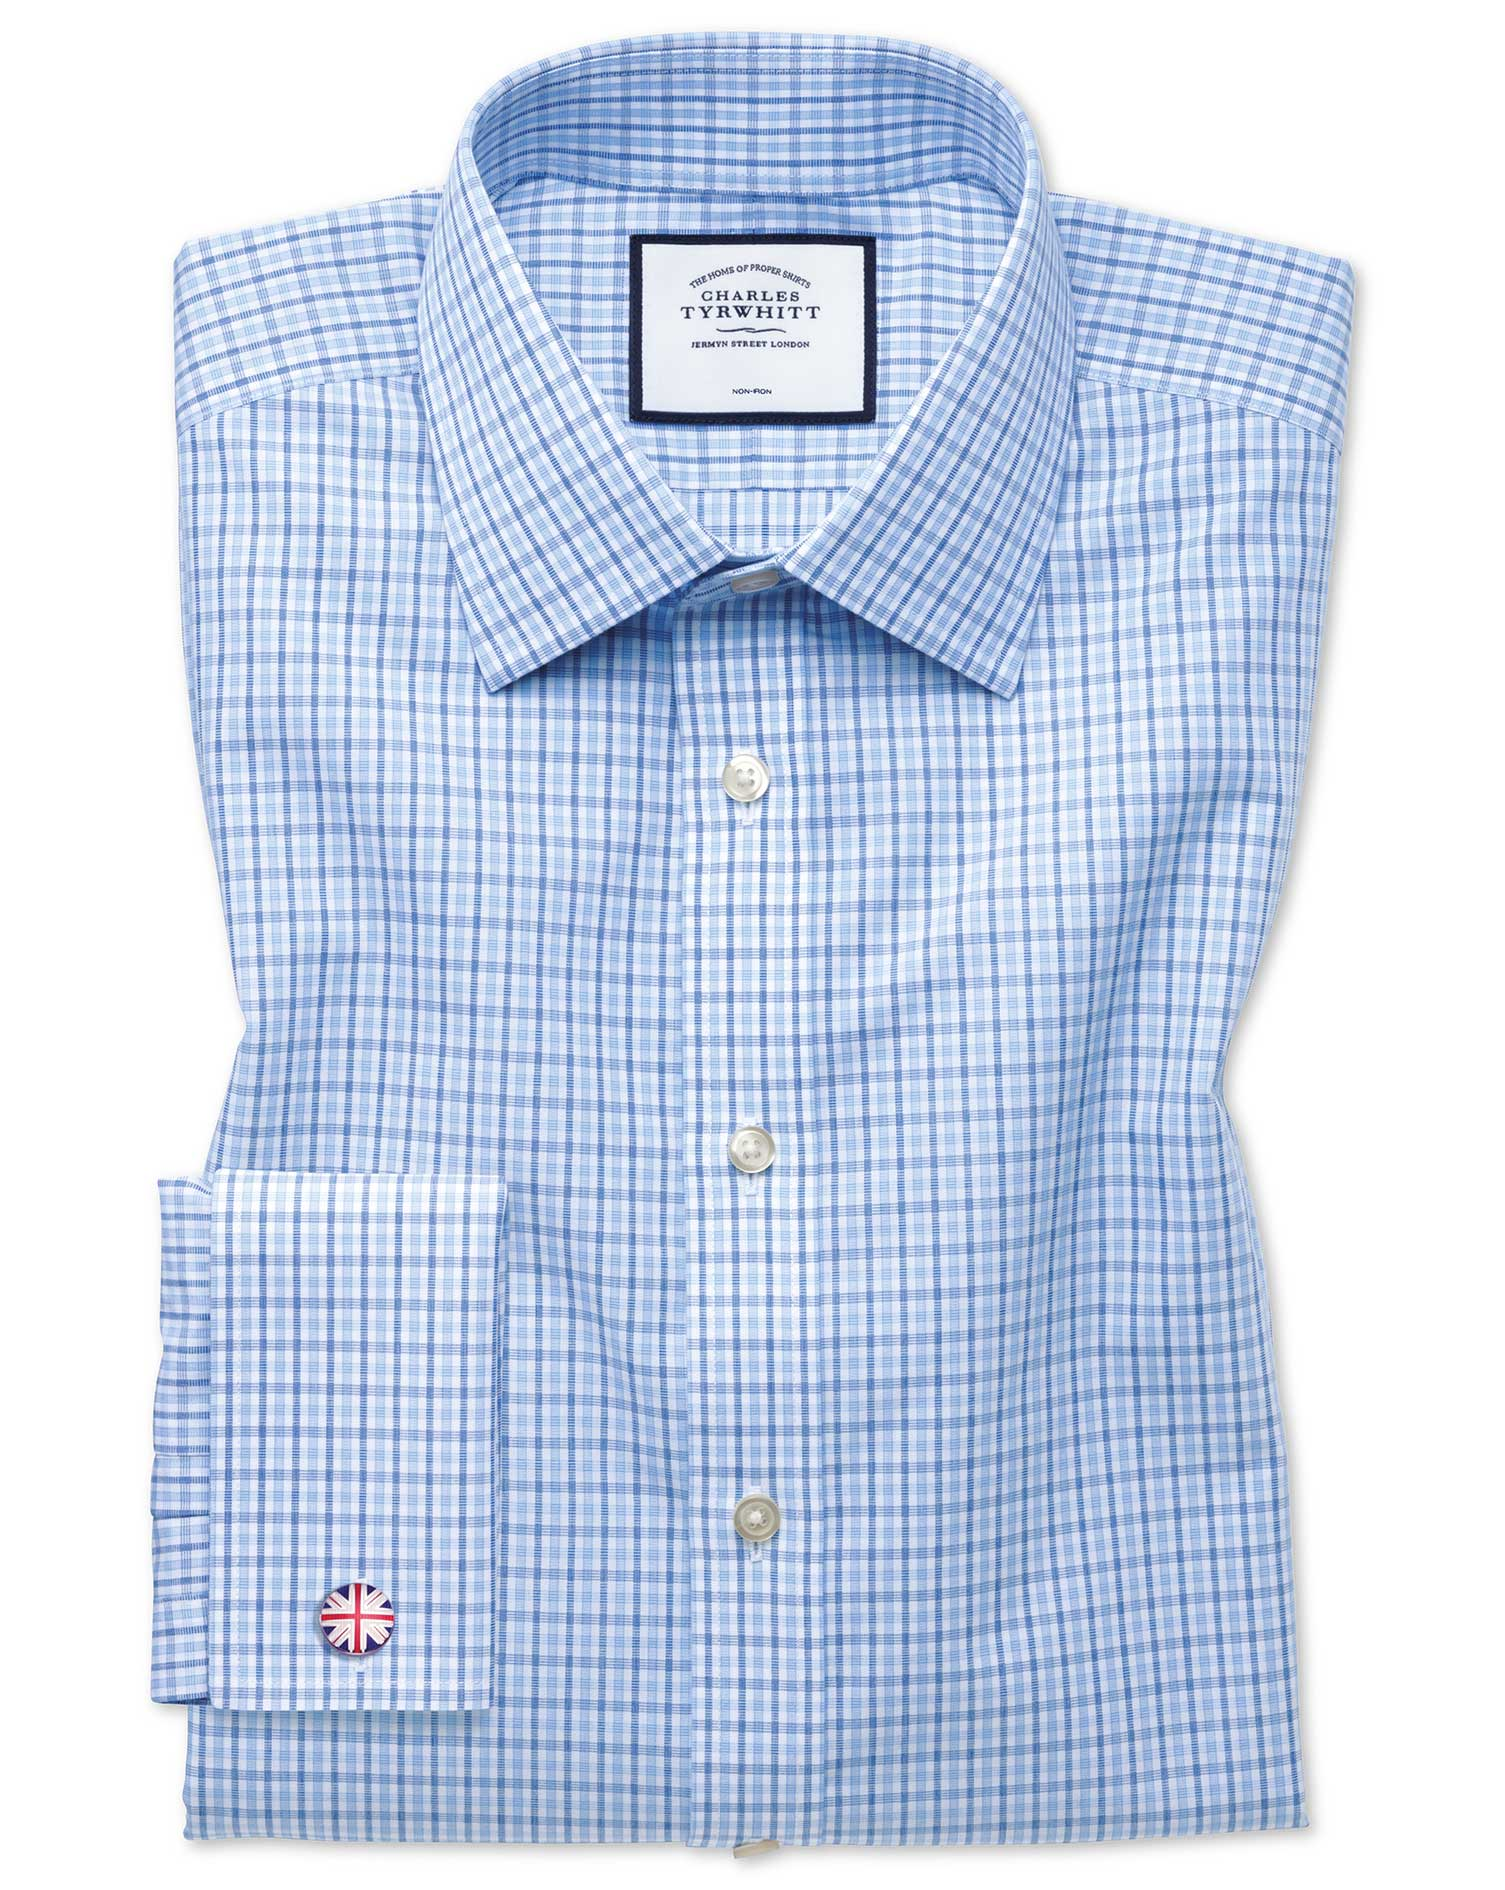 Classic Fit Non-Iron Poplin Blue and Sky Blue Cotton Formal Shirt Double Cuff Size 16/36 by Charles